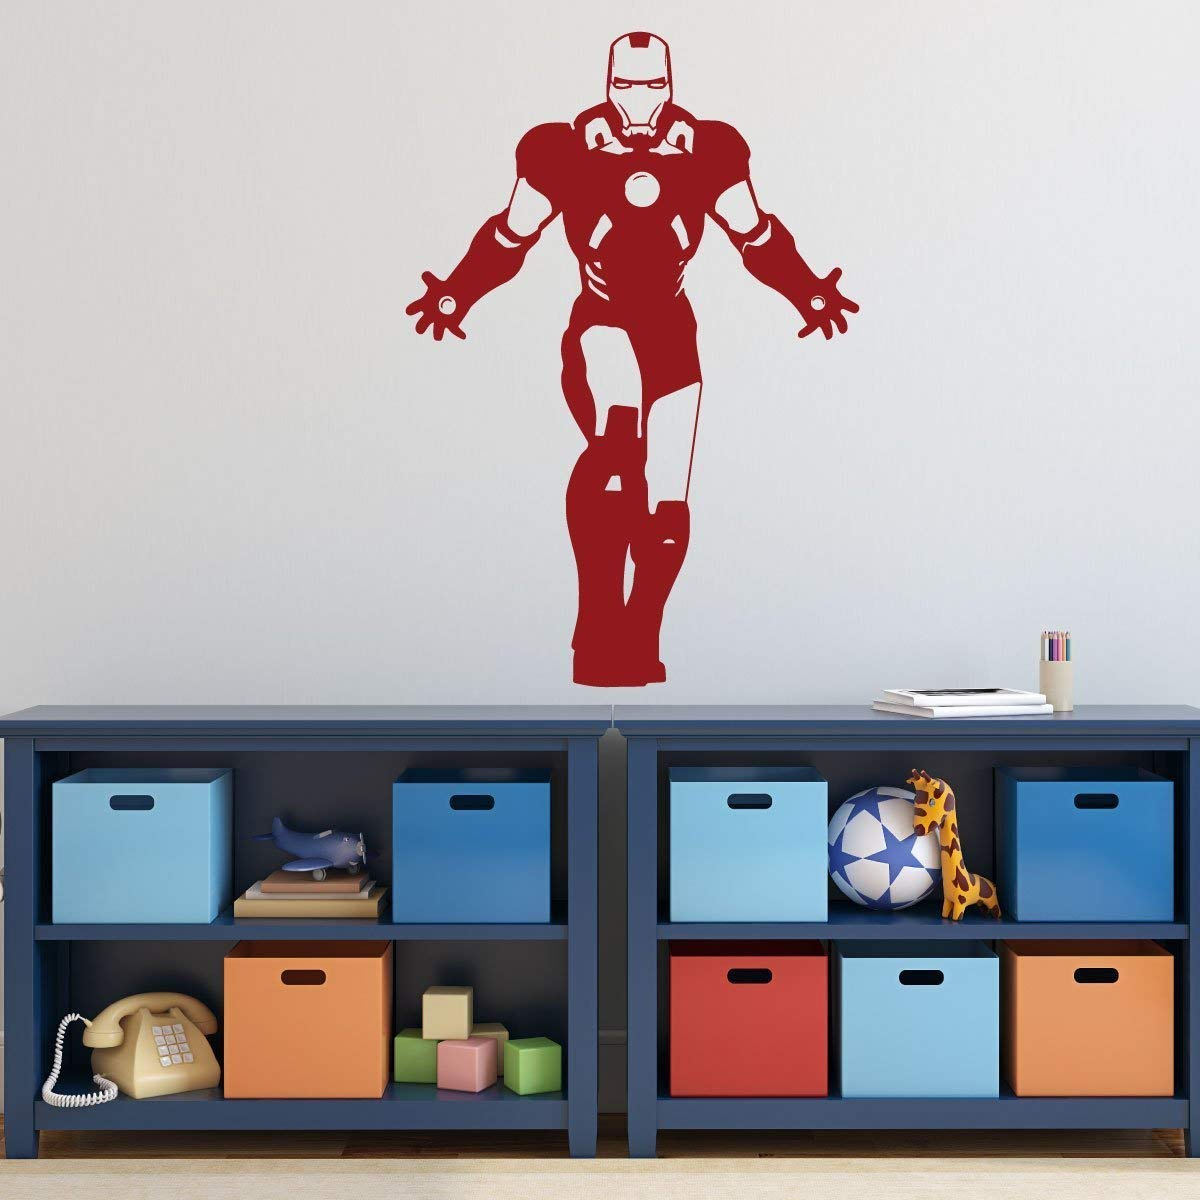 Personalized ironman wall decor avengers superhero silhouette with custom name vinyl decal stickers for birthday party decorations or boy bedroom dark